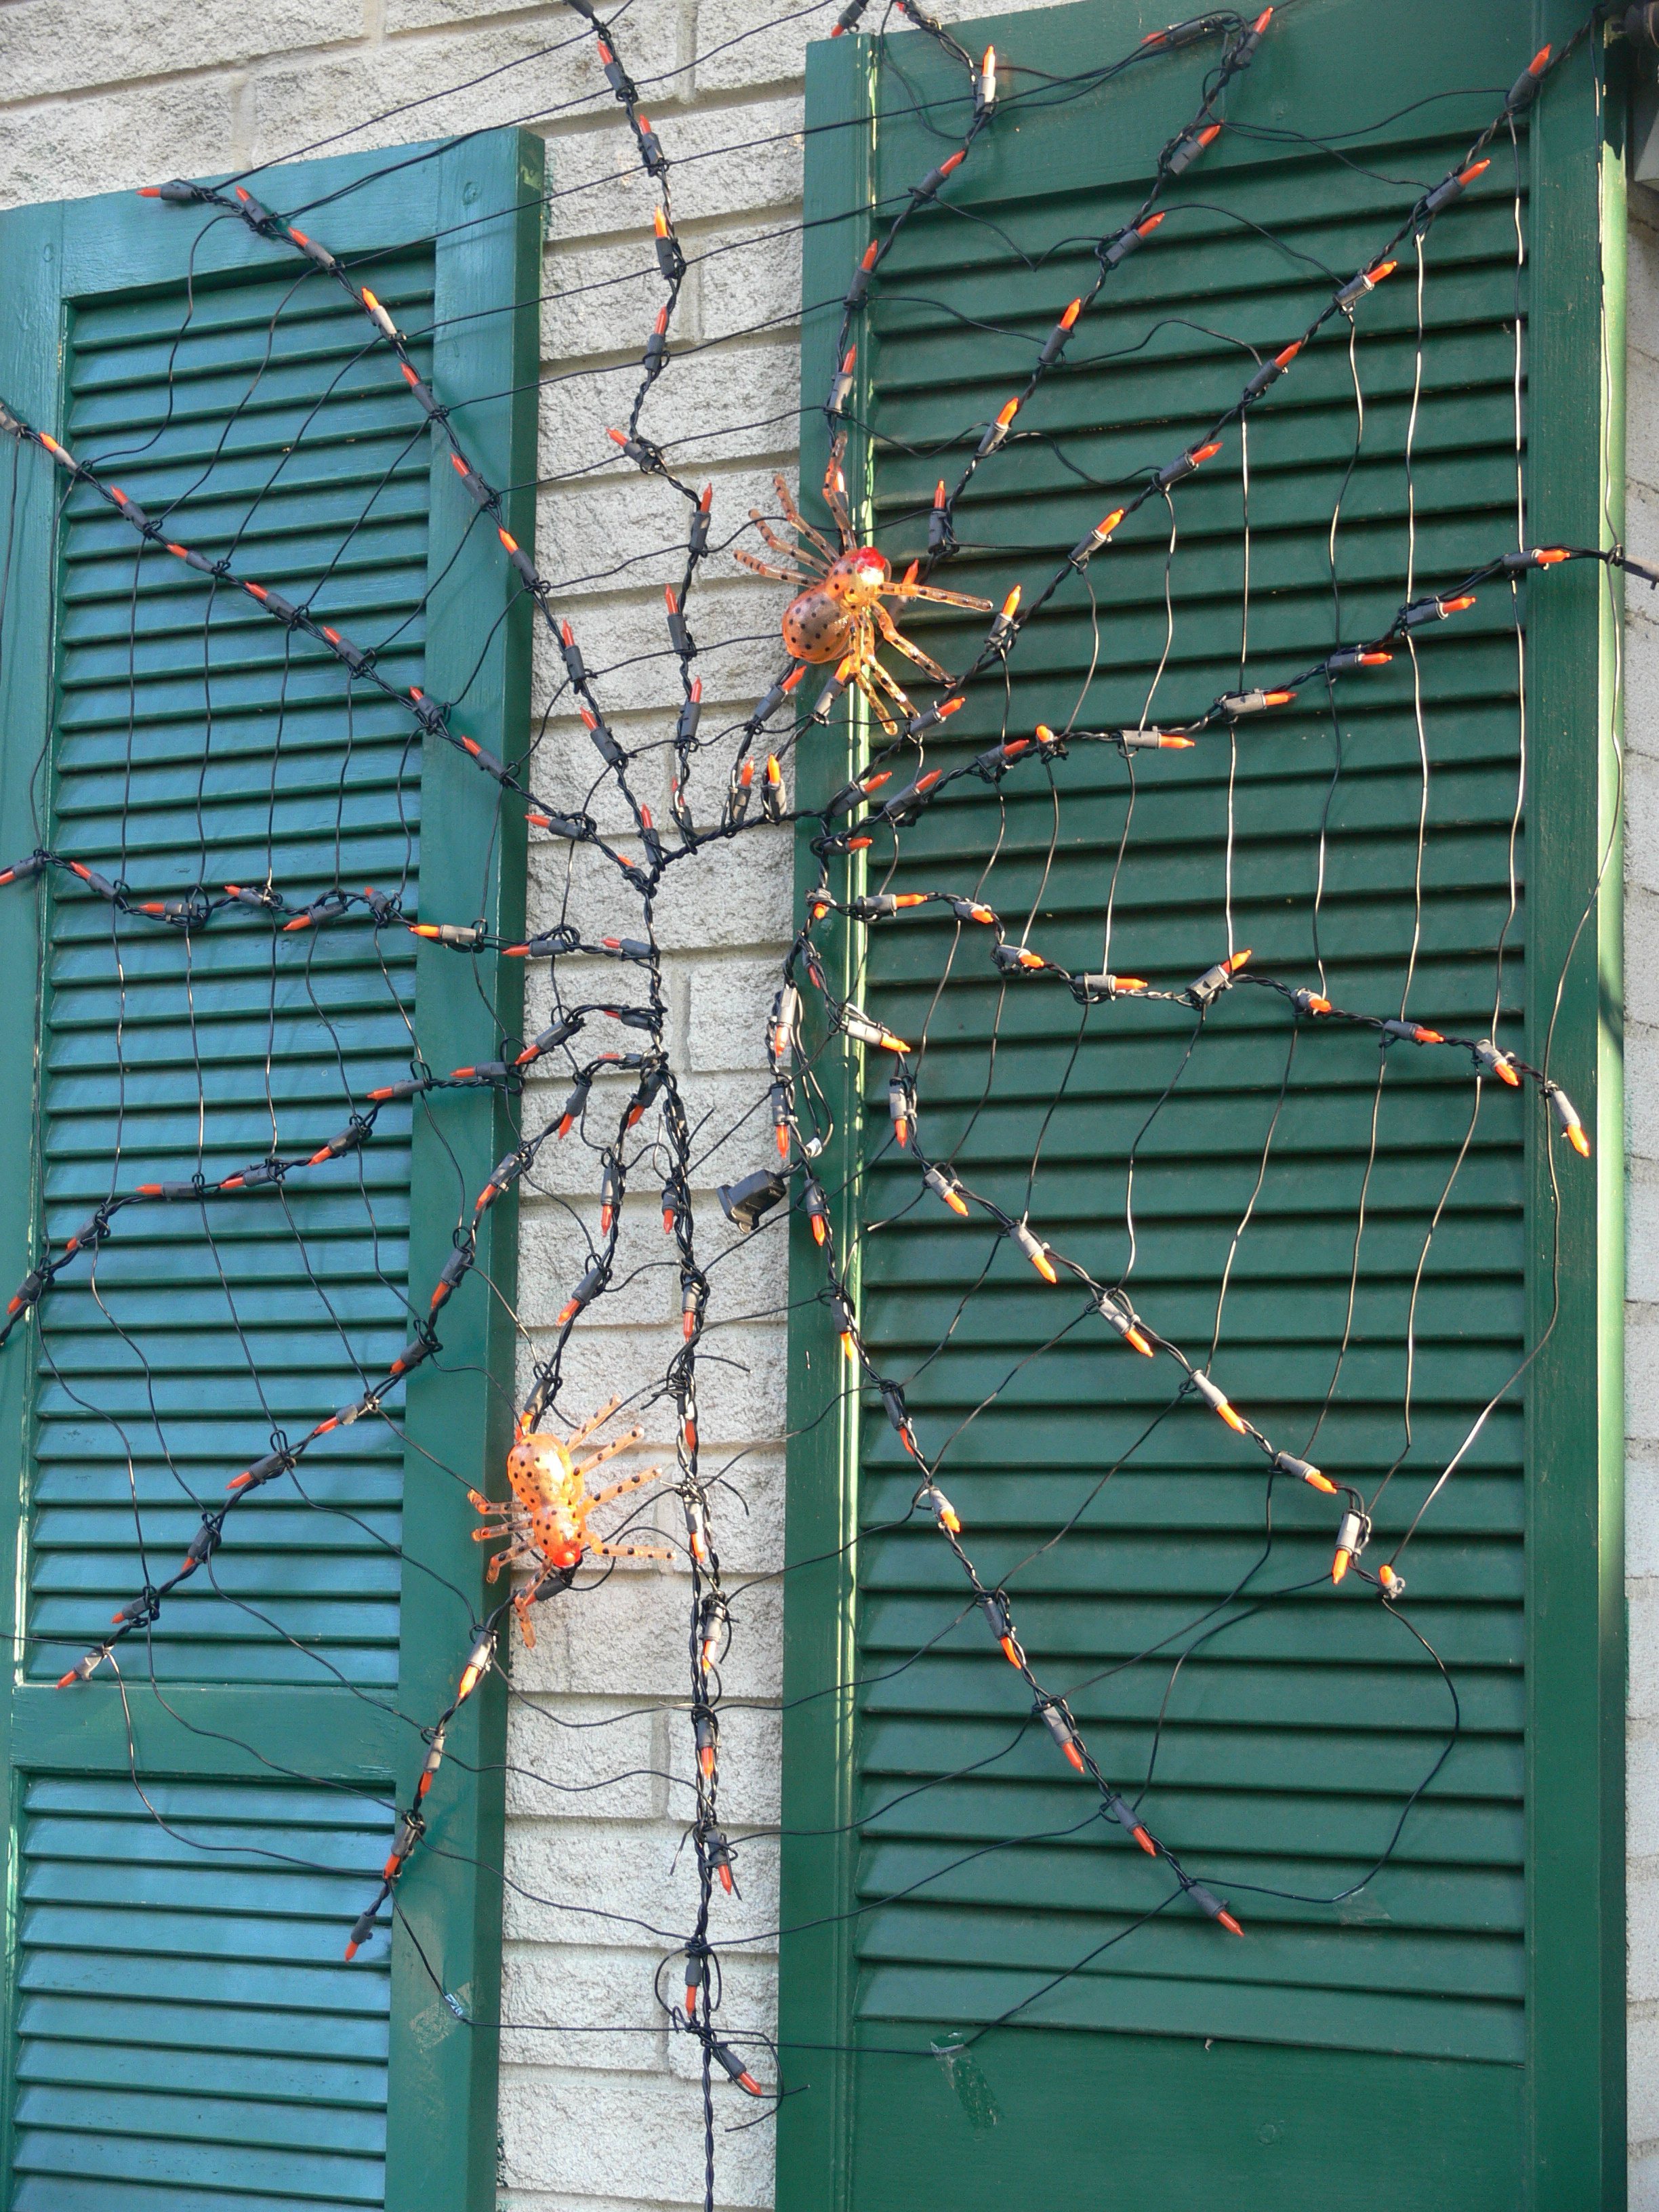 File:Halloween decoration spider web.jpg - Wikimedia Commons